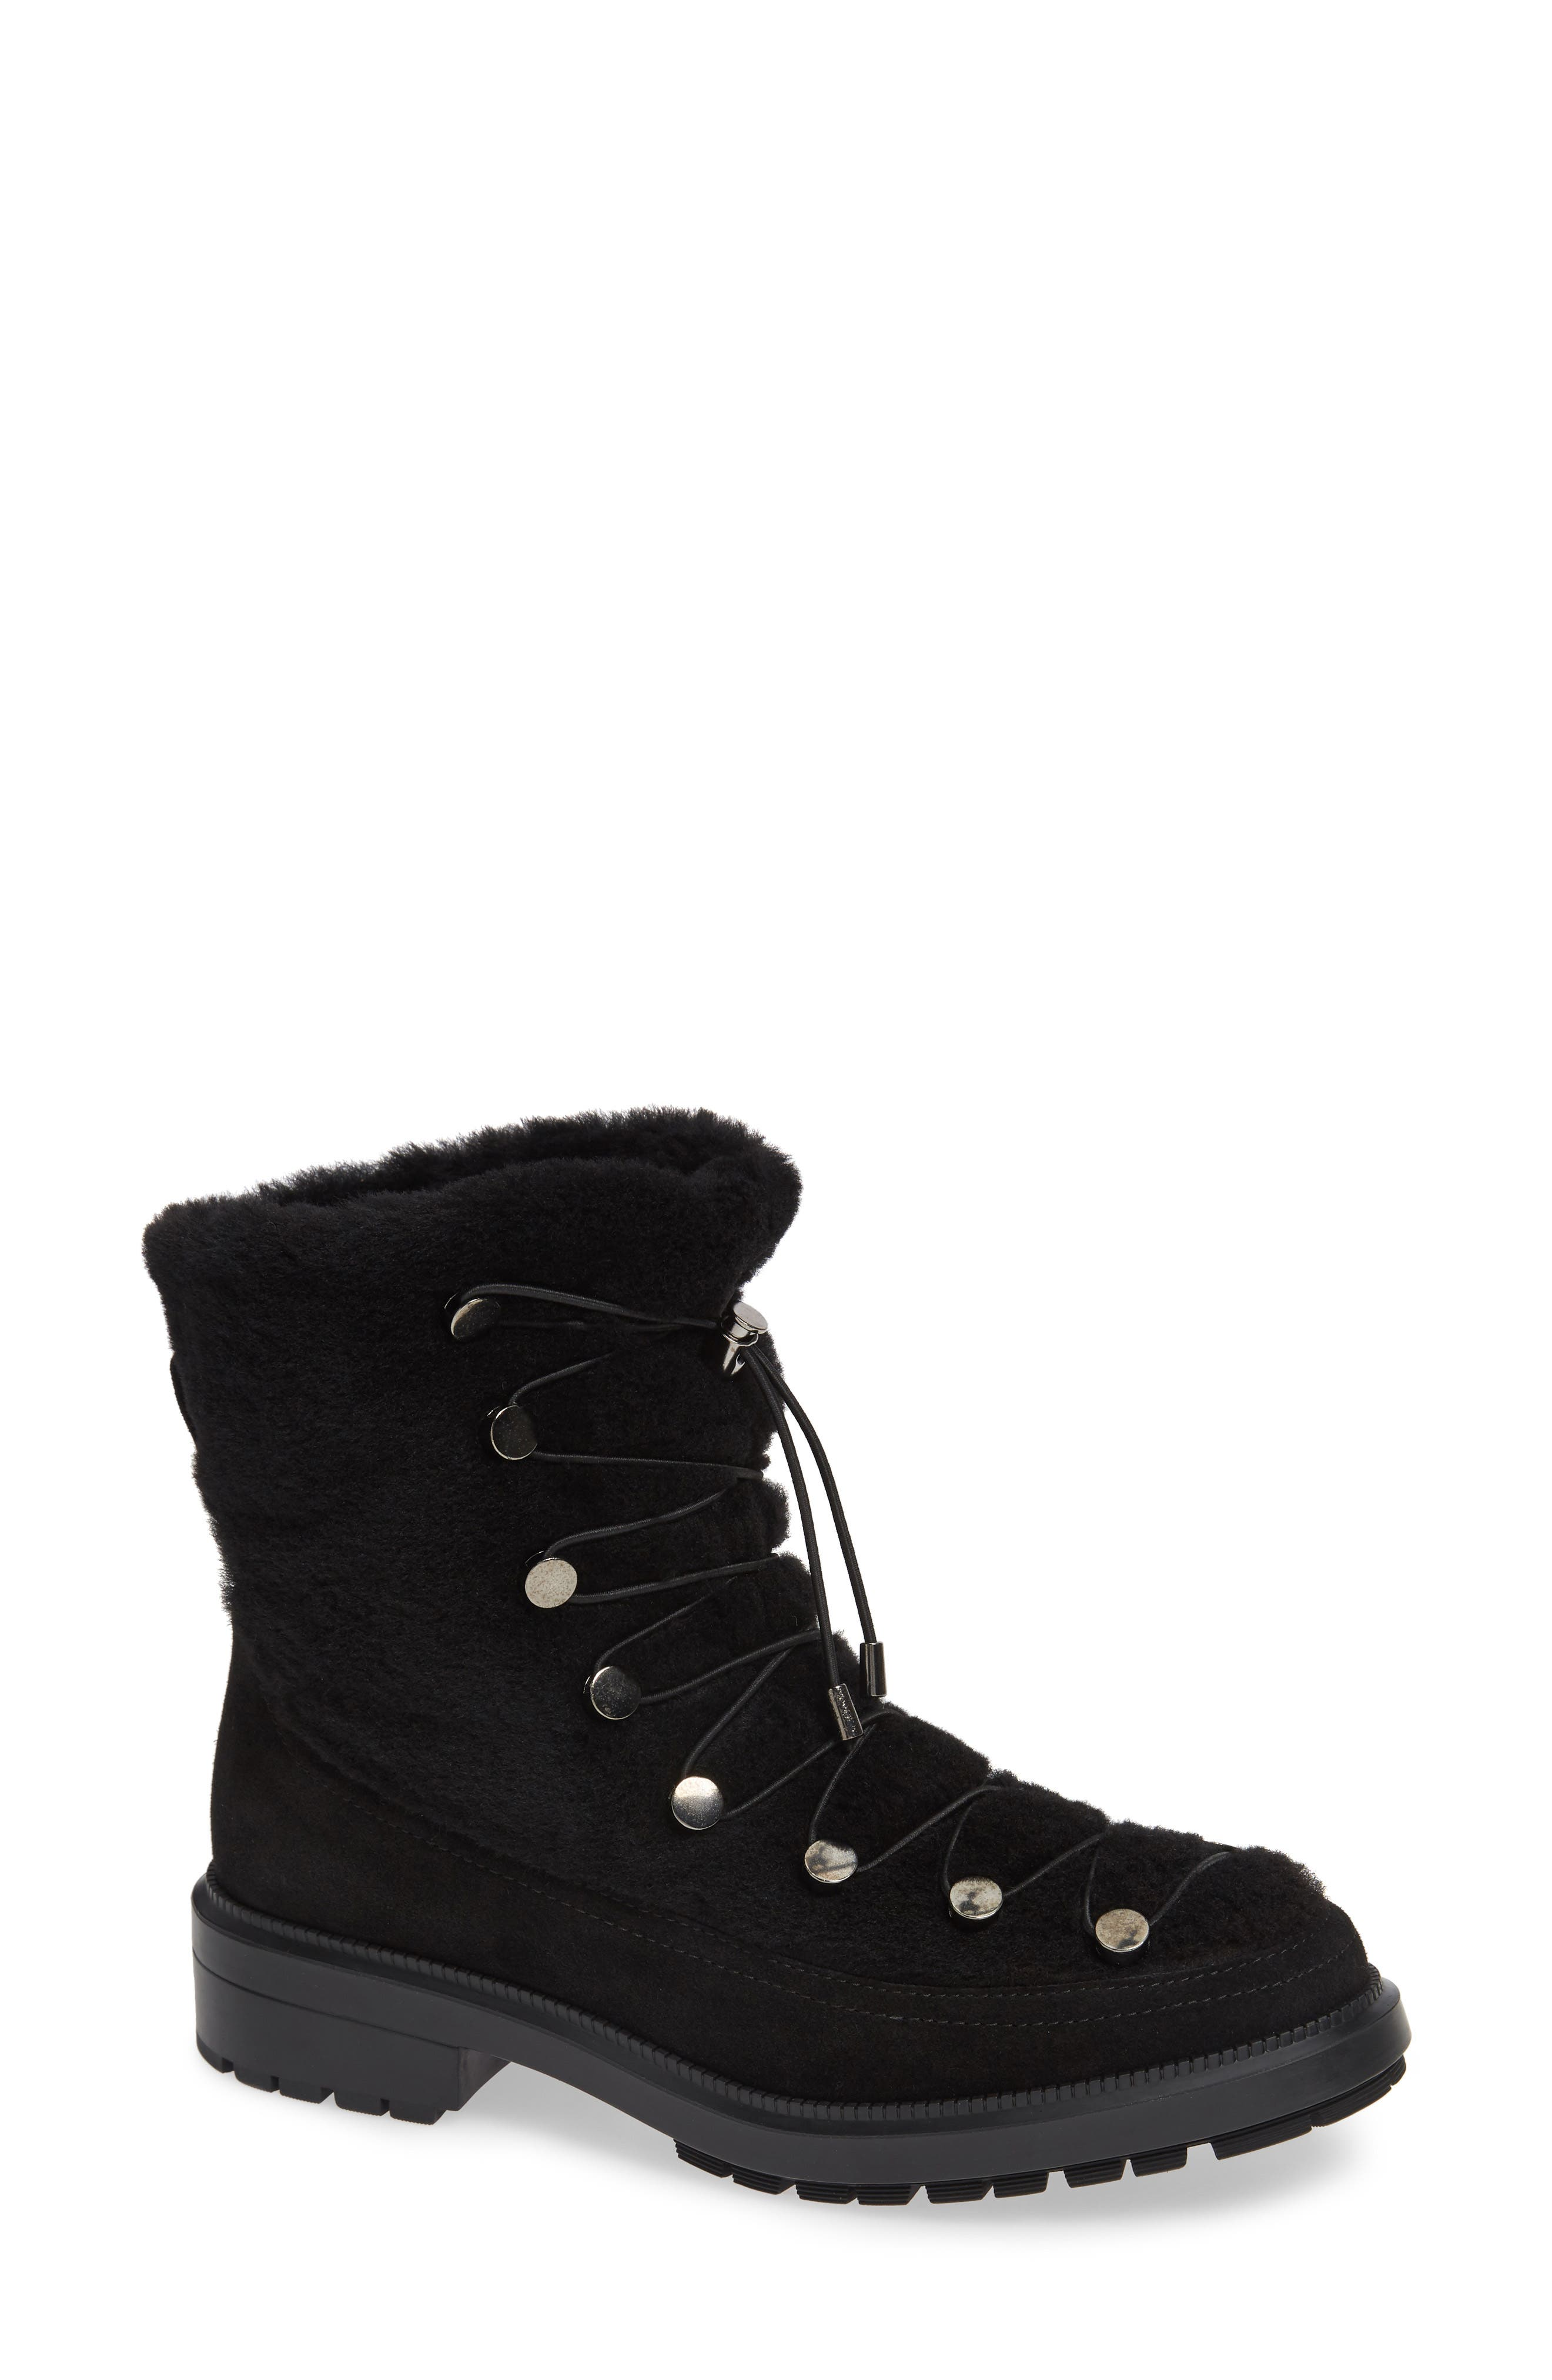 AQUATALIA Women'S Lorena Weatherproof Shearling Lace Up Booties in Black